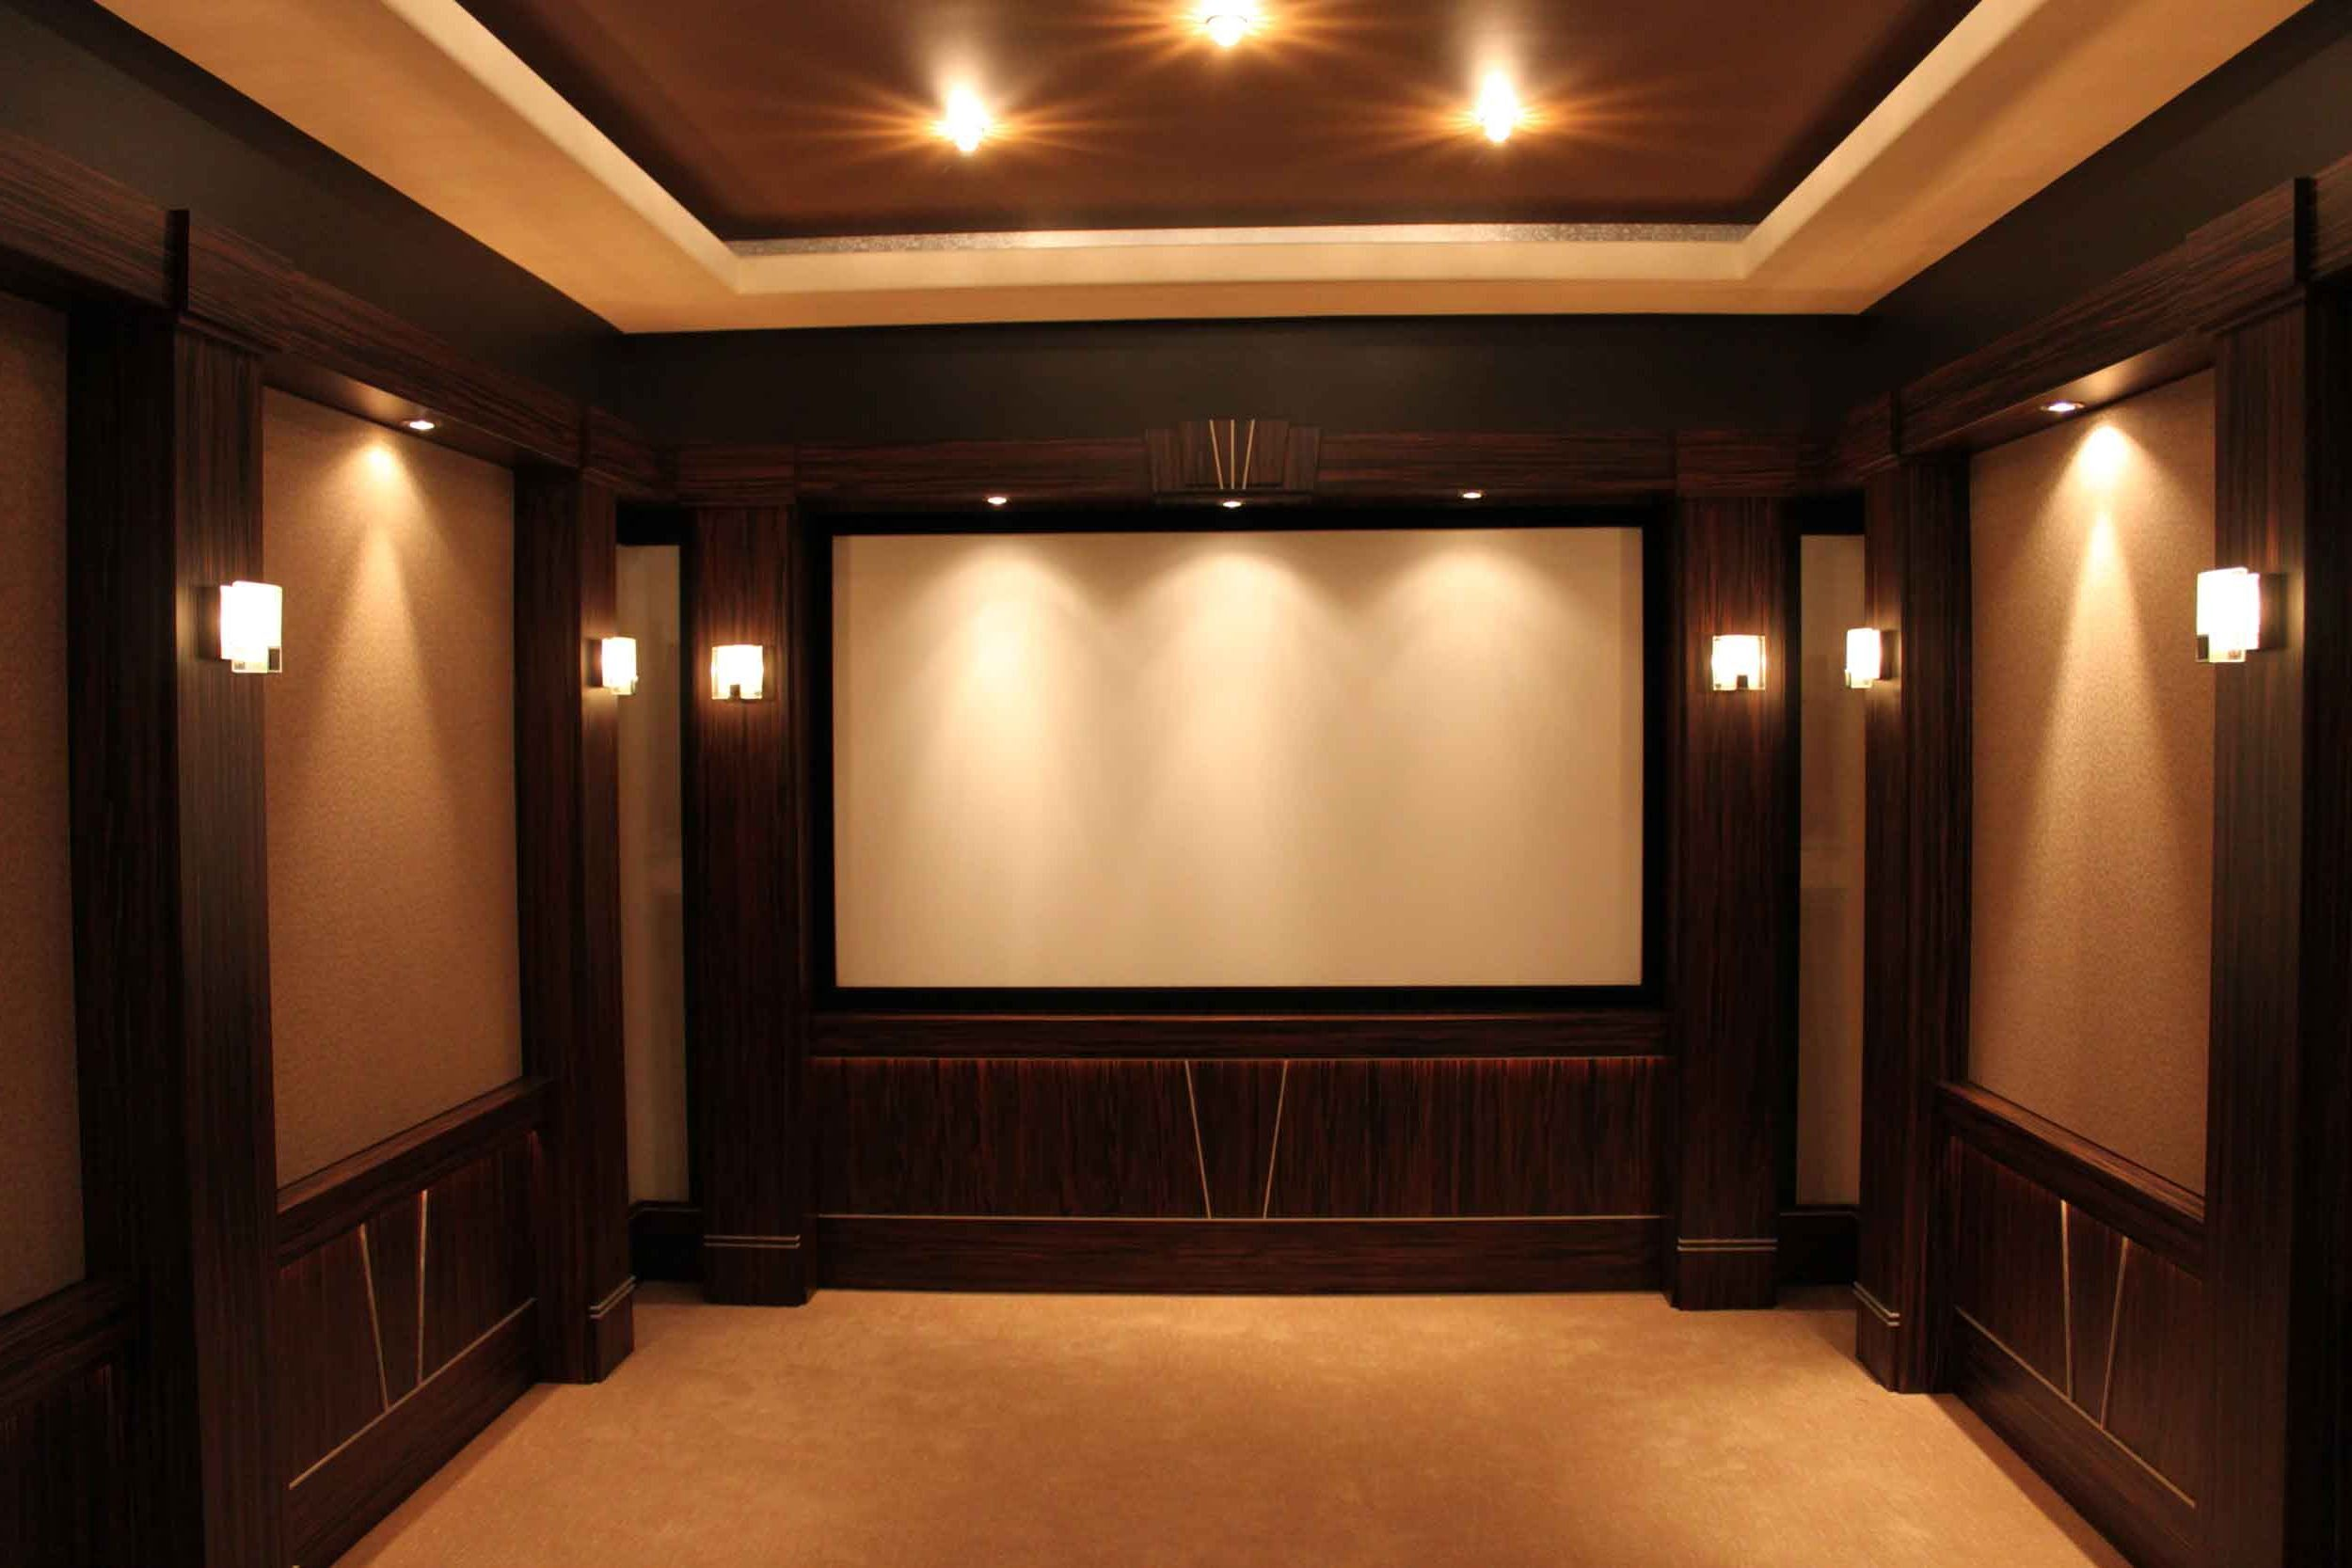 Entertainment Room Ideas interior small home theater room ideas big screen on the beige